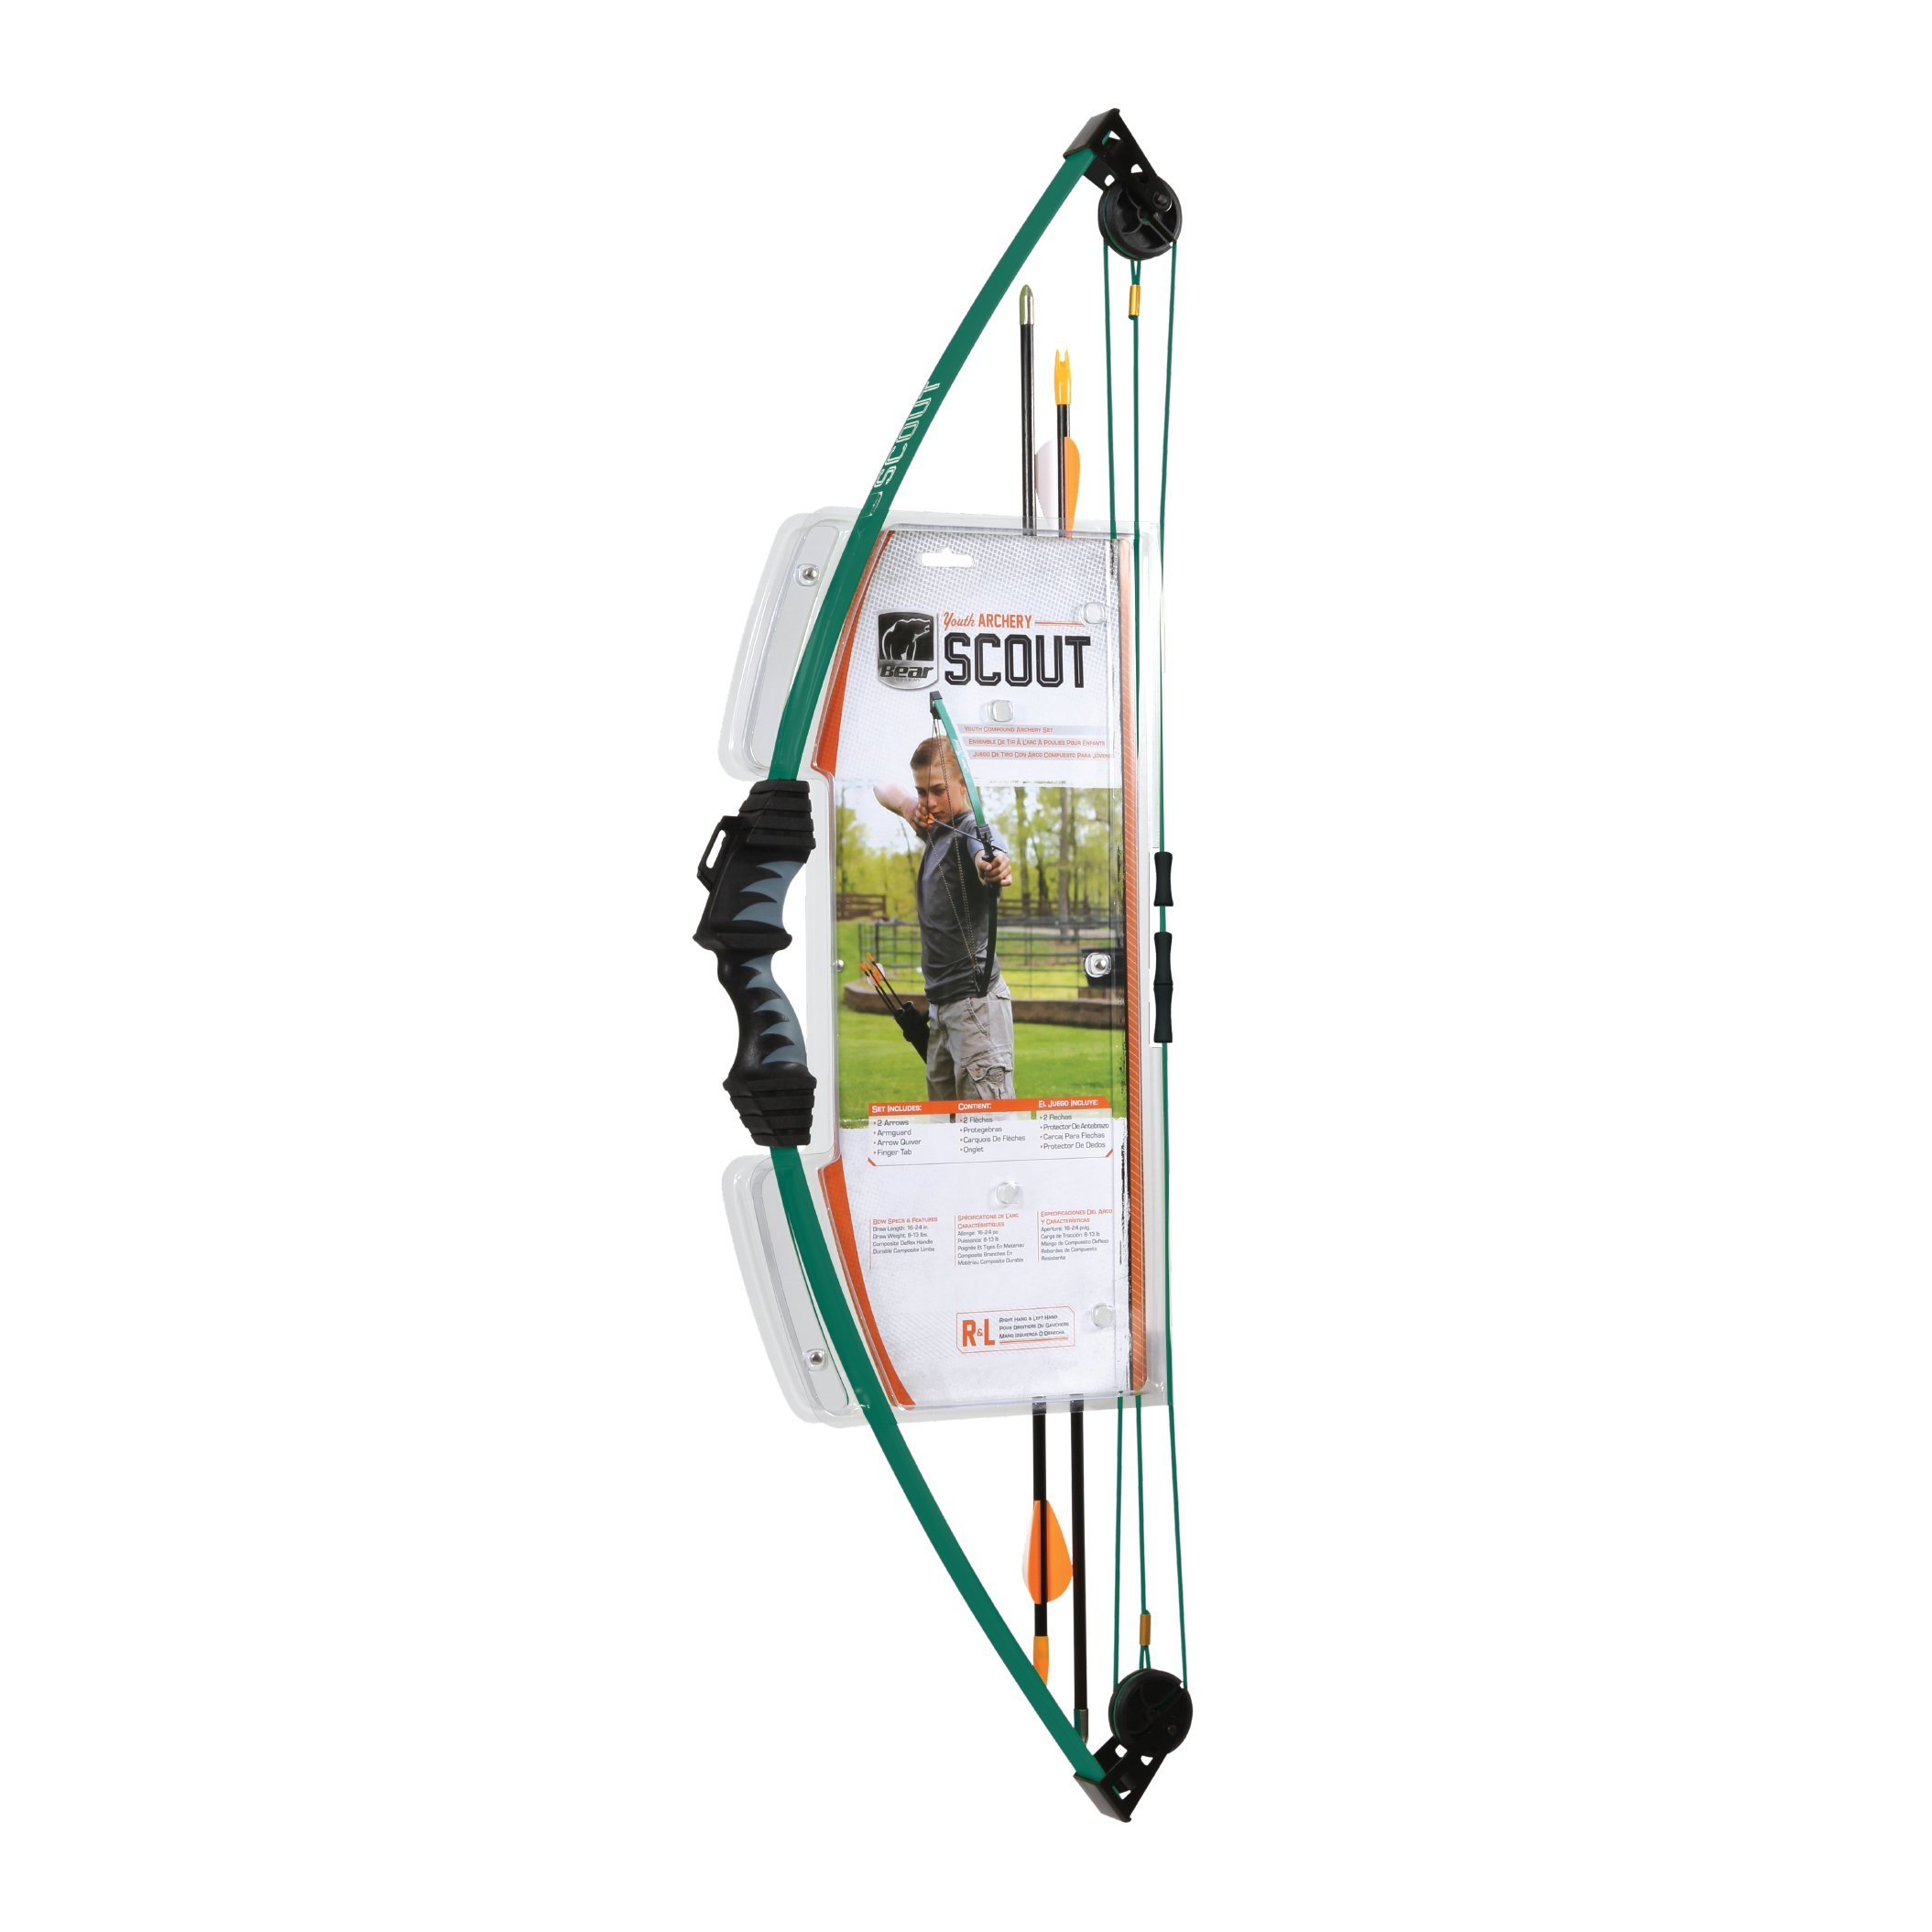 Bear Archery Scout Youth Bow Only - Hunter Green - Recommended for Children 4 to 7 Years Old by Bear Archery